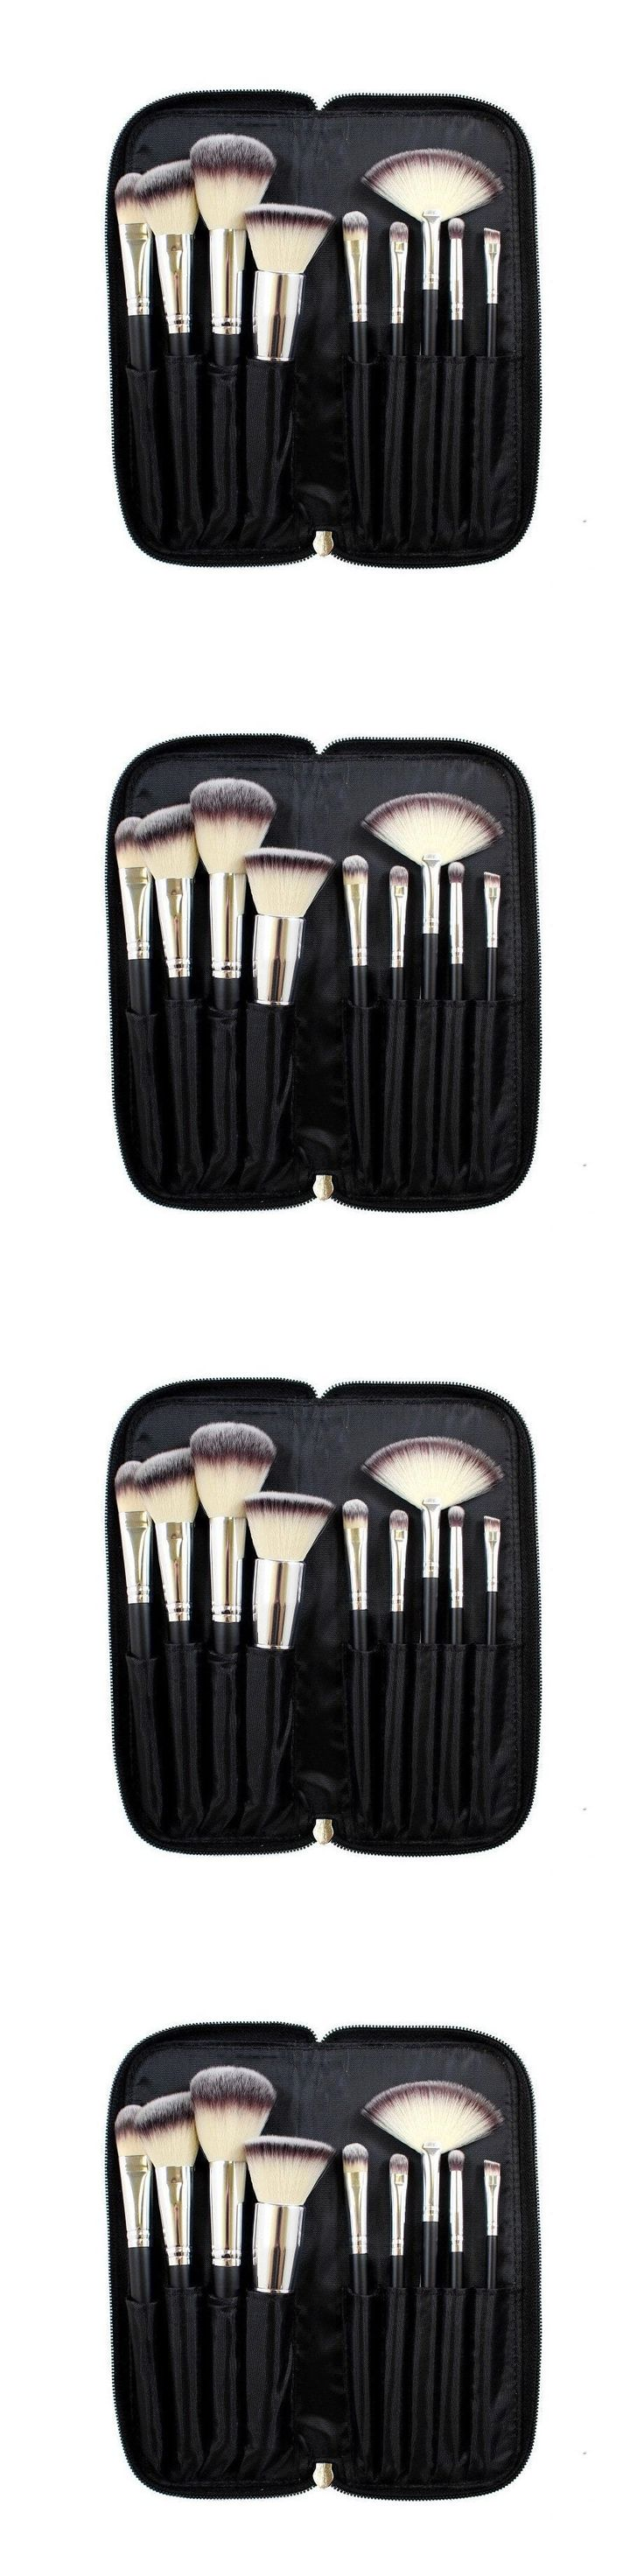 health and beauty: Professional Makeup Brush Set With Case Cosmetic Brushes Powder Foundation Soft -> BUY IT NOW ONLY: $37 on eBay!